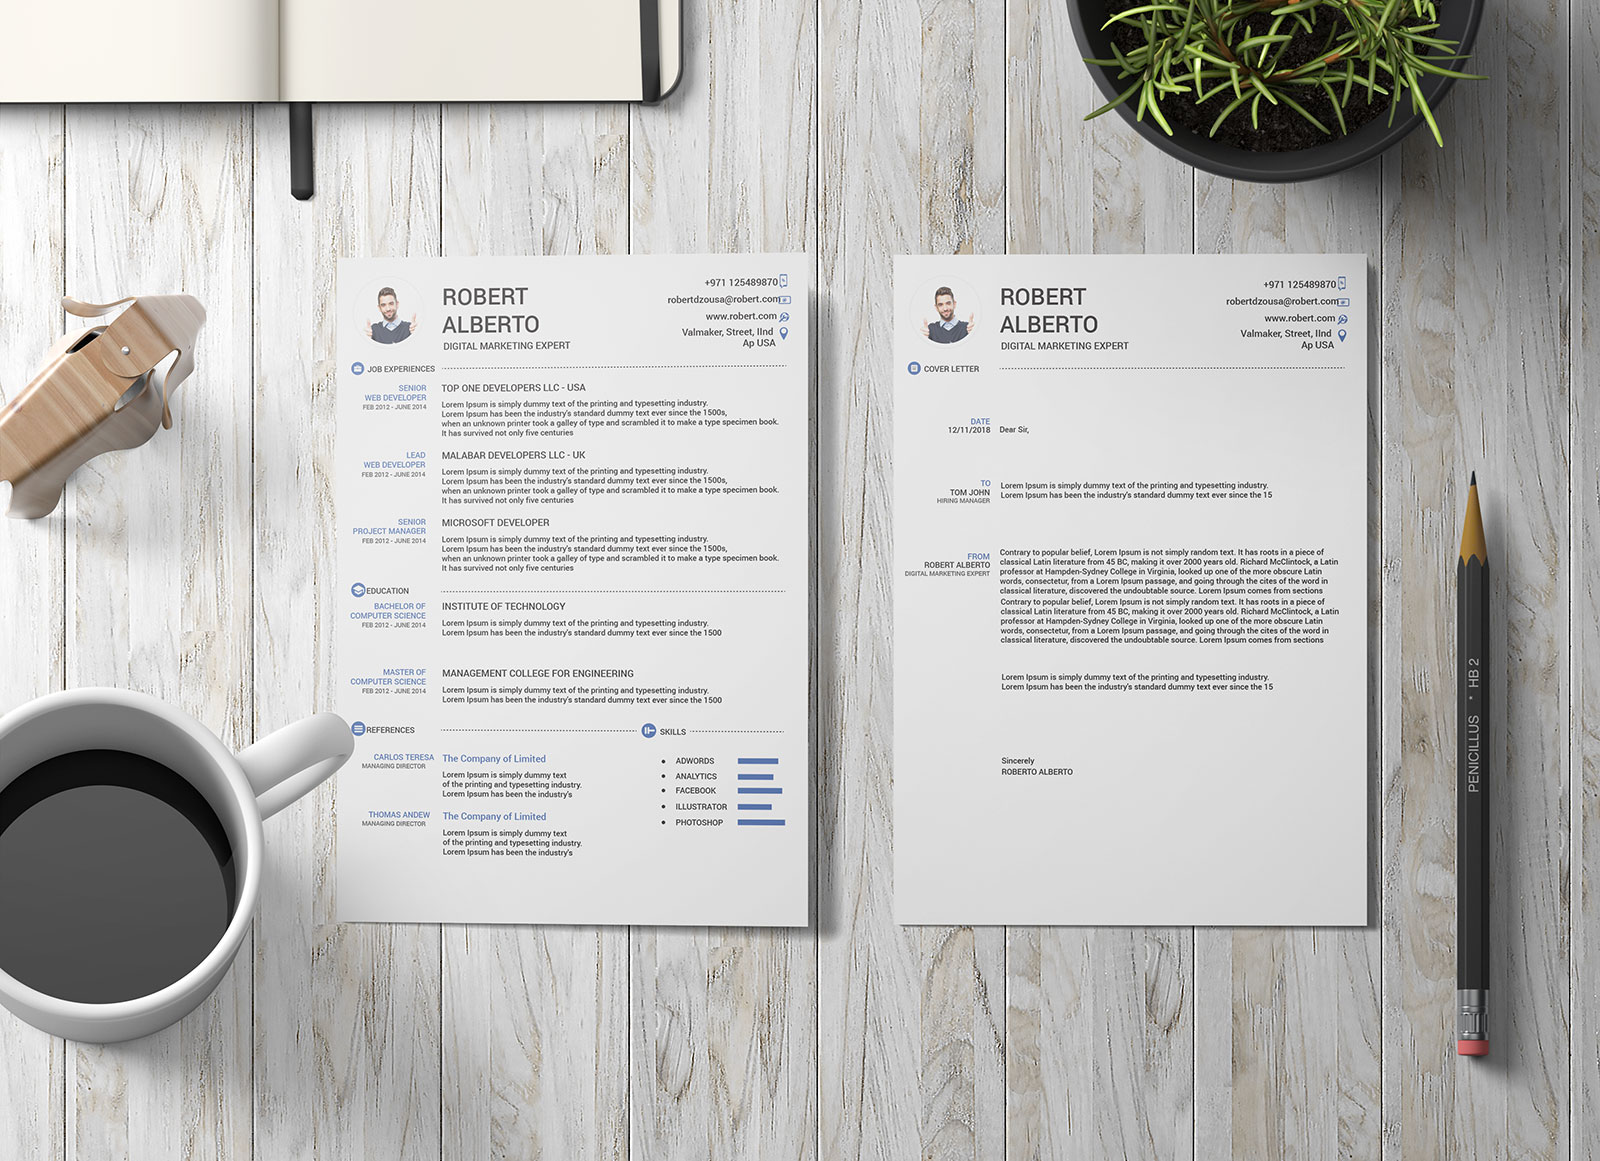 Free-Resume-(CV)-Template-&-Cover-Letter-in-DOC-&-Ai-Format-2